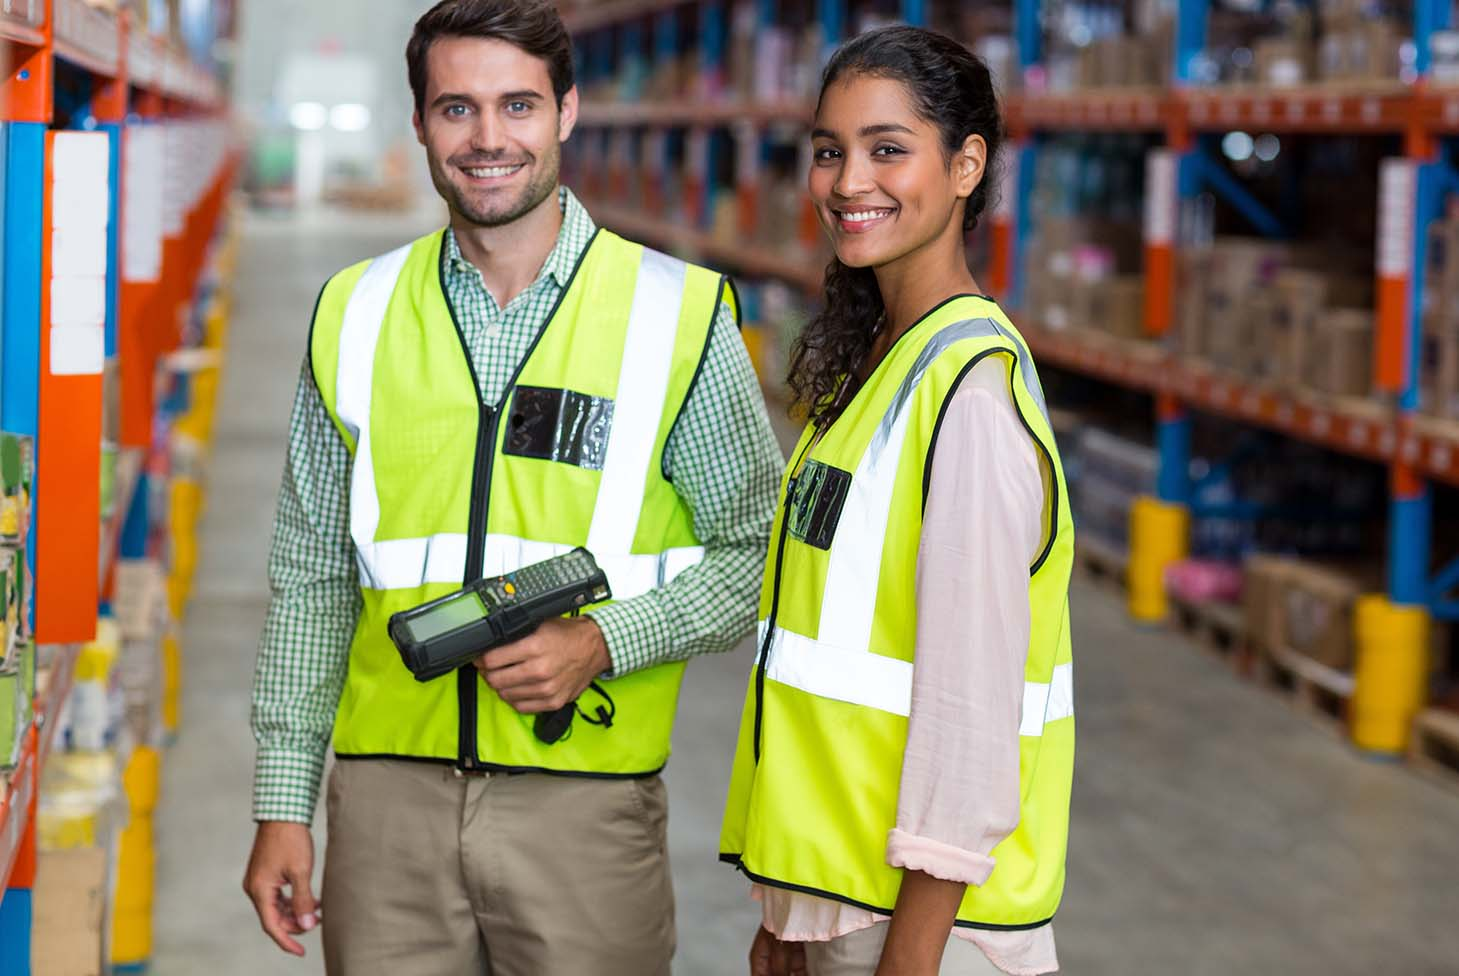 Get access. Track things. - > Delivery tracking from warehouse to customer> A+ inventory accuracy, picking, and order fulfillment> Reliable WiFi network solutions for smart warehouse